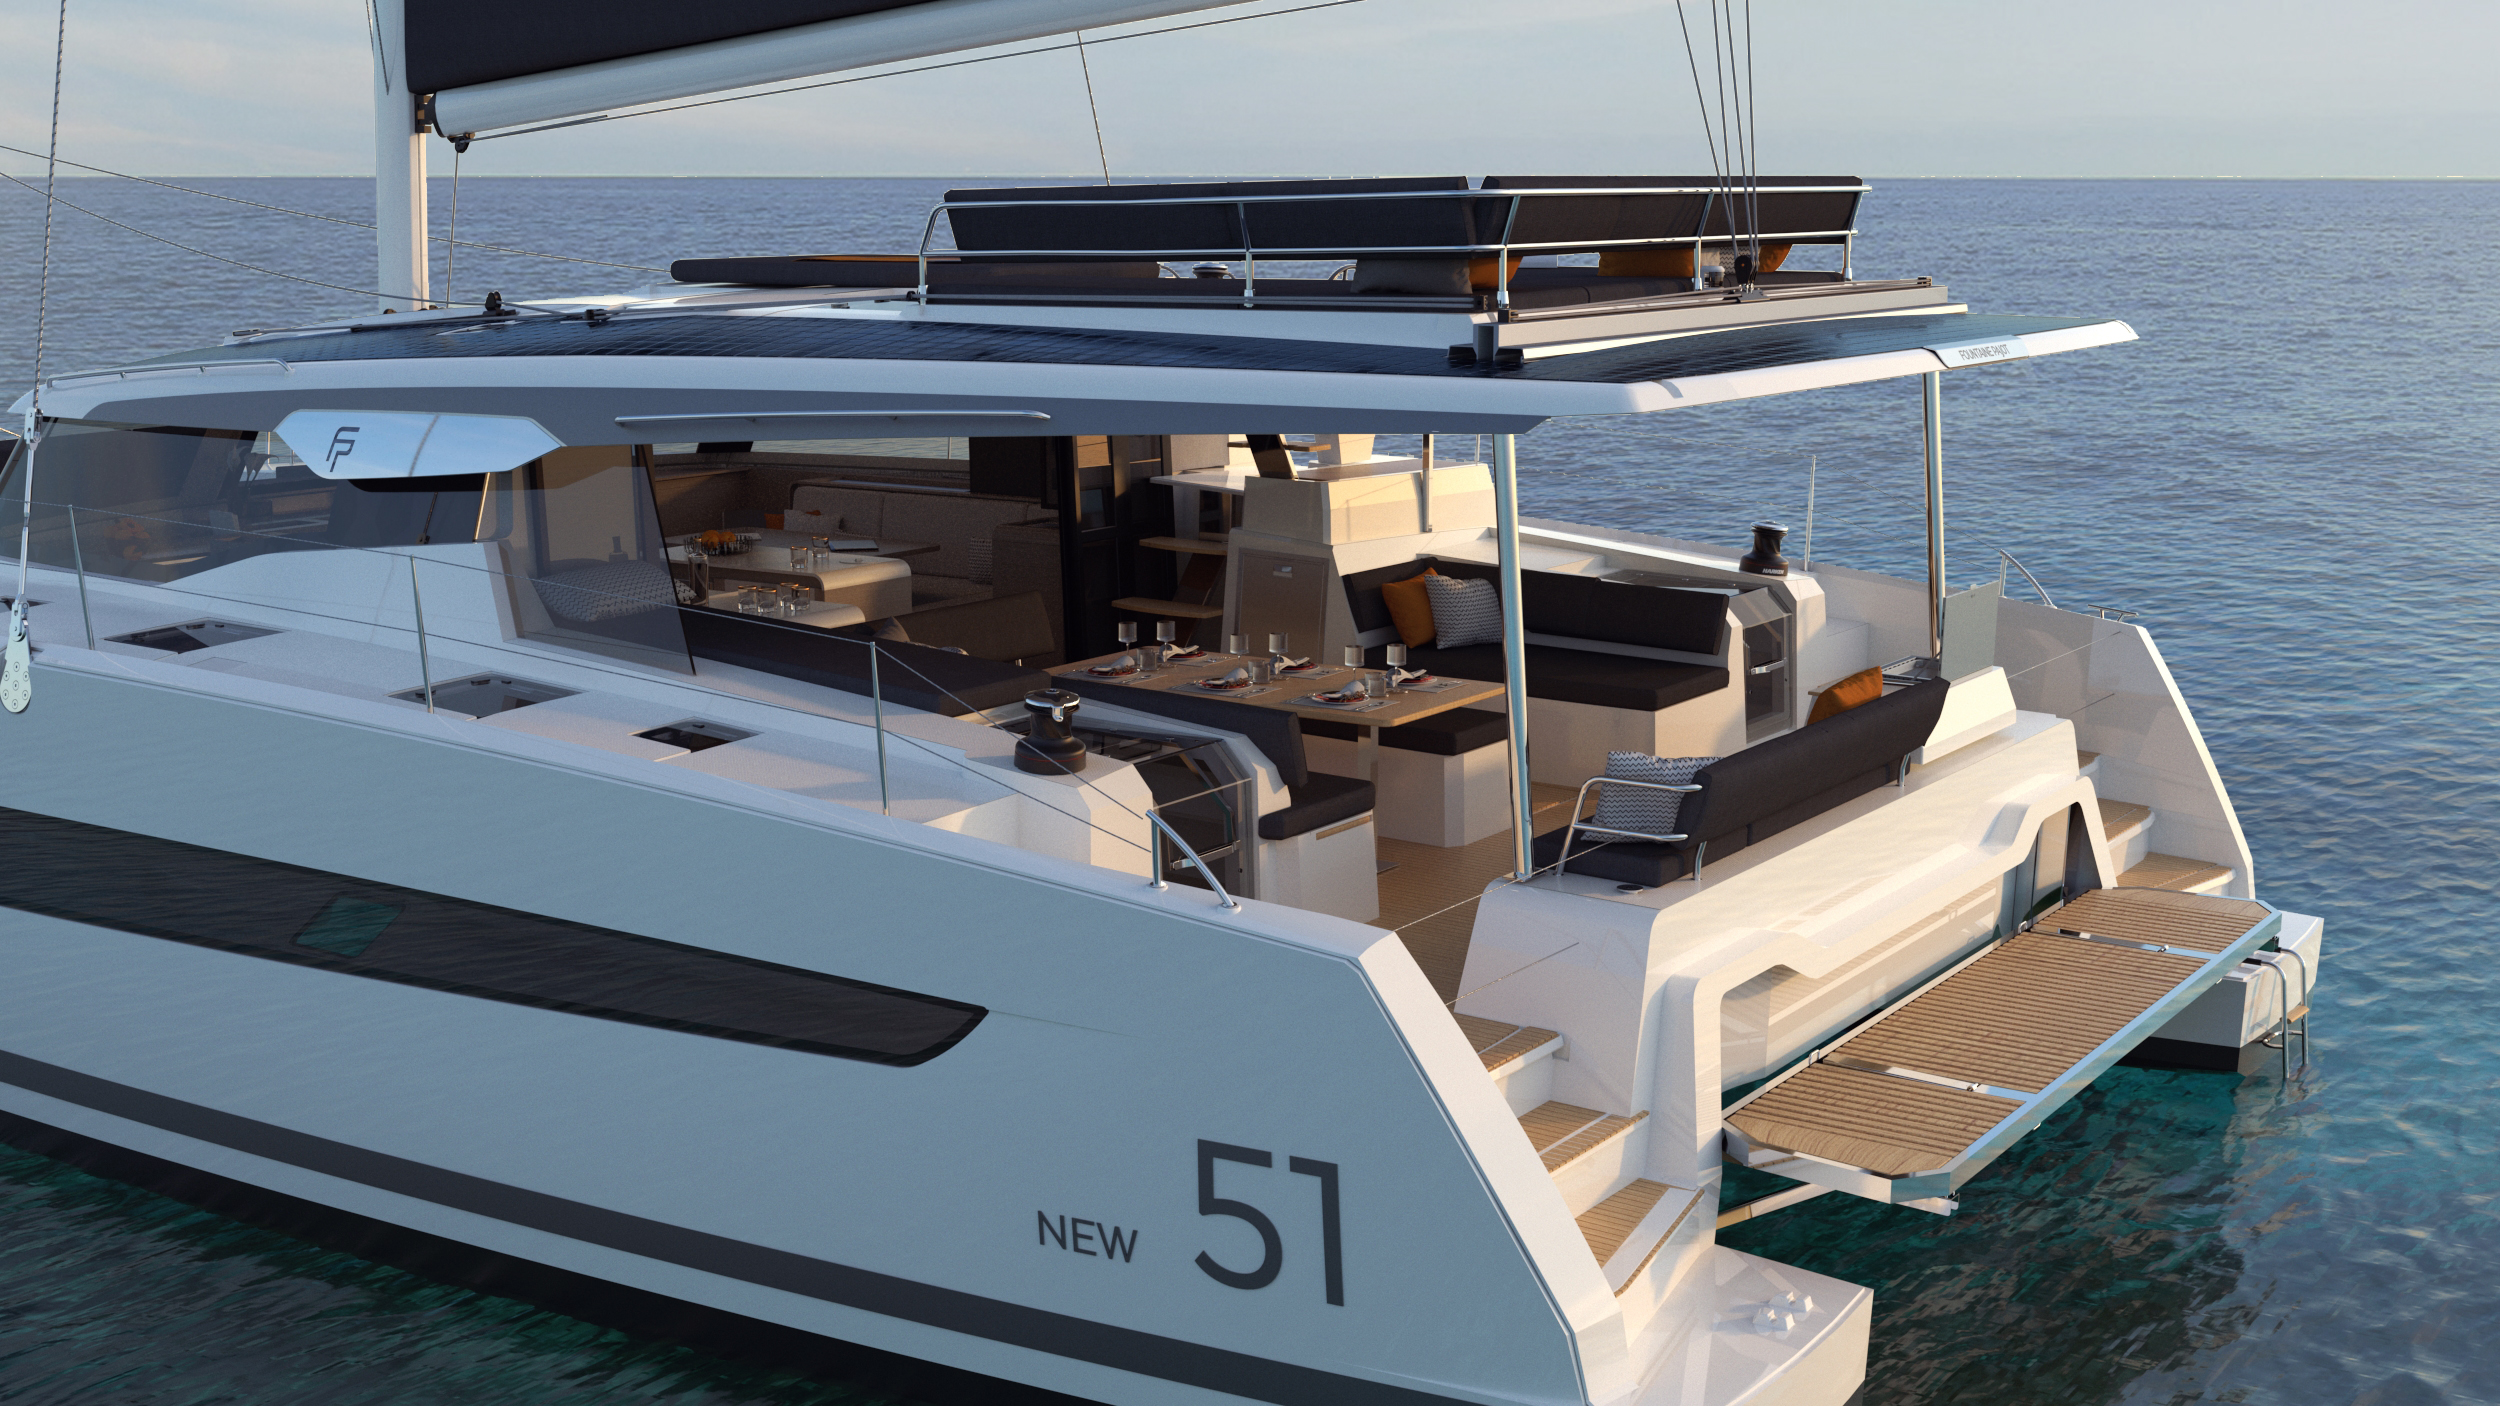 Fountaine-Pajot-New-51-Exteriors-19